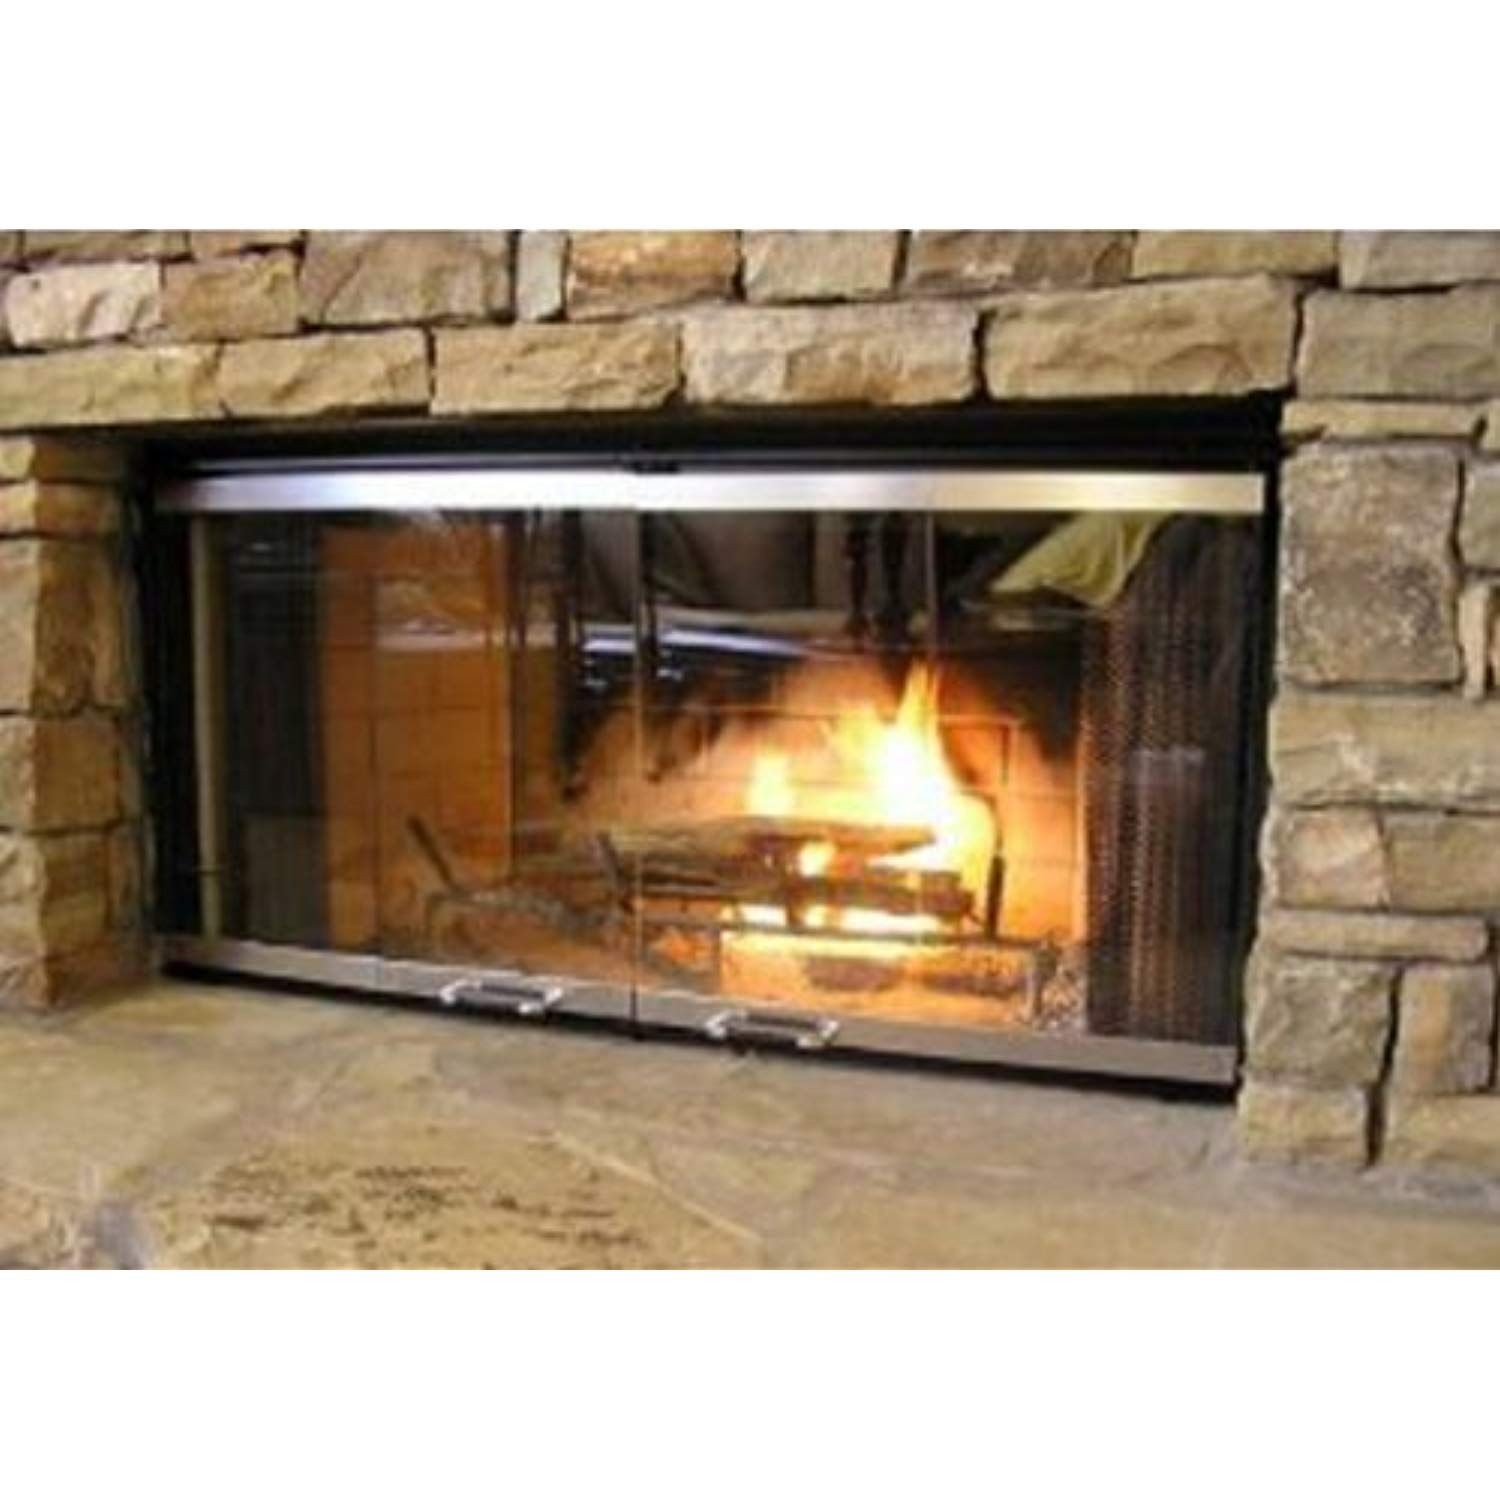 Fireplace Doors For Heatilator Fireplace You Can Get Additional Details At The Image Link This Is An A Heatilator Fireplace Fireplace Glass Doors Fireplace